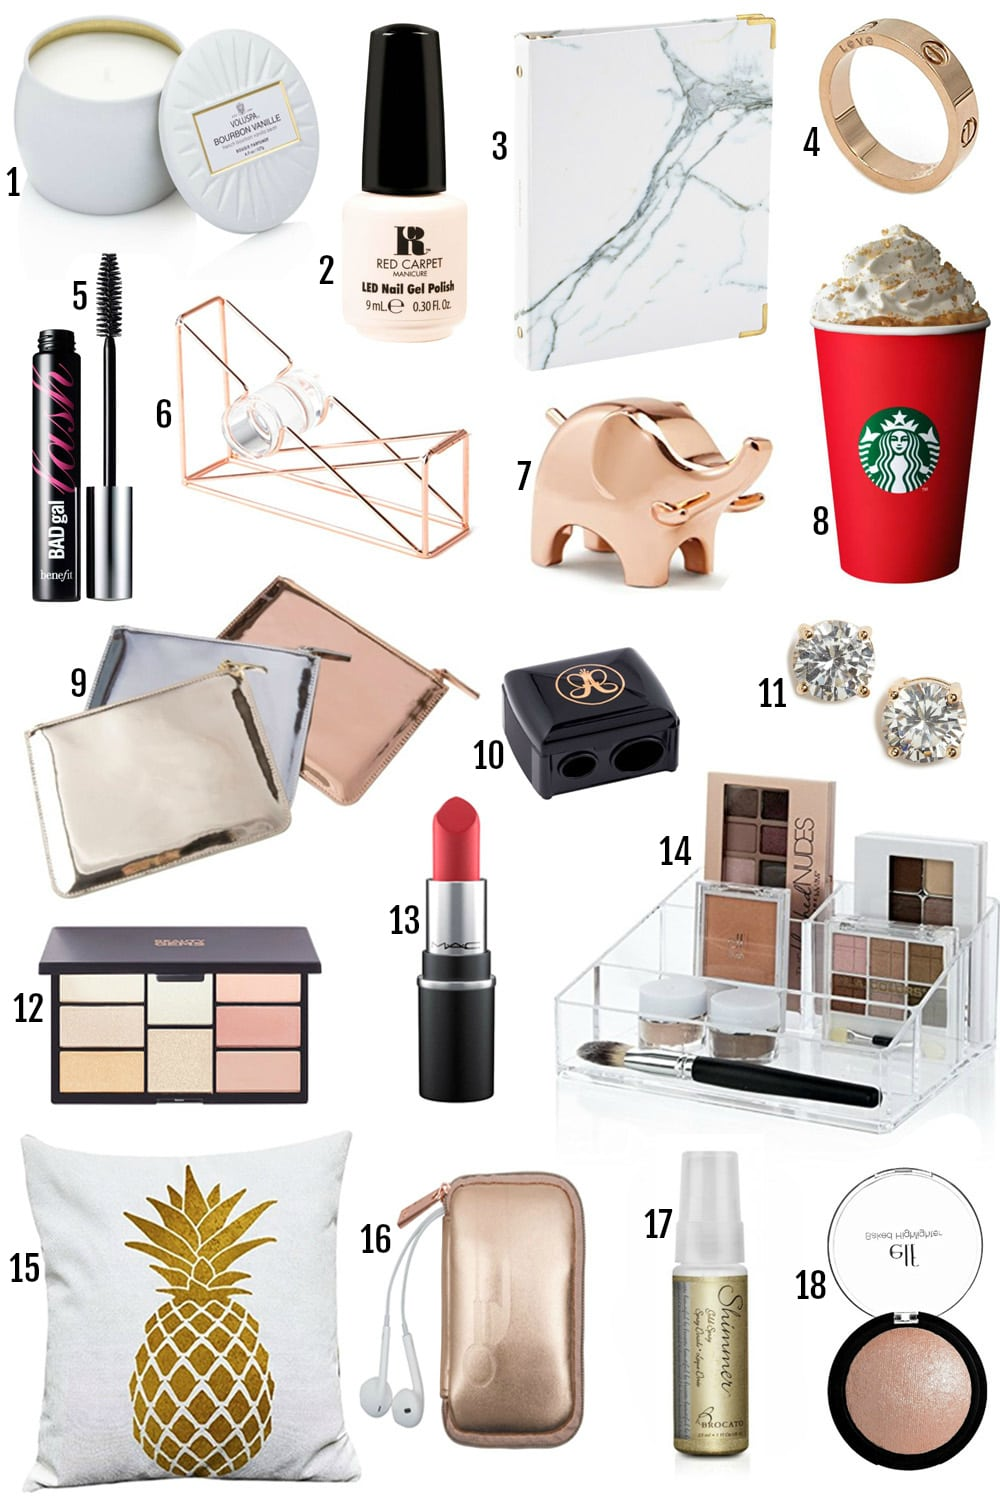 The Best Stocking Stuffers For Her Under 10 Holidays Mash Elle